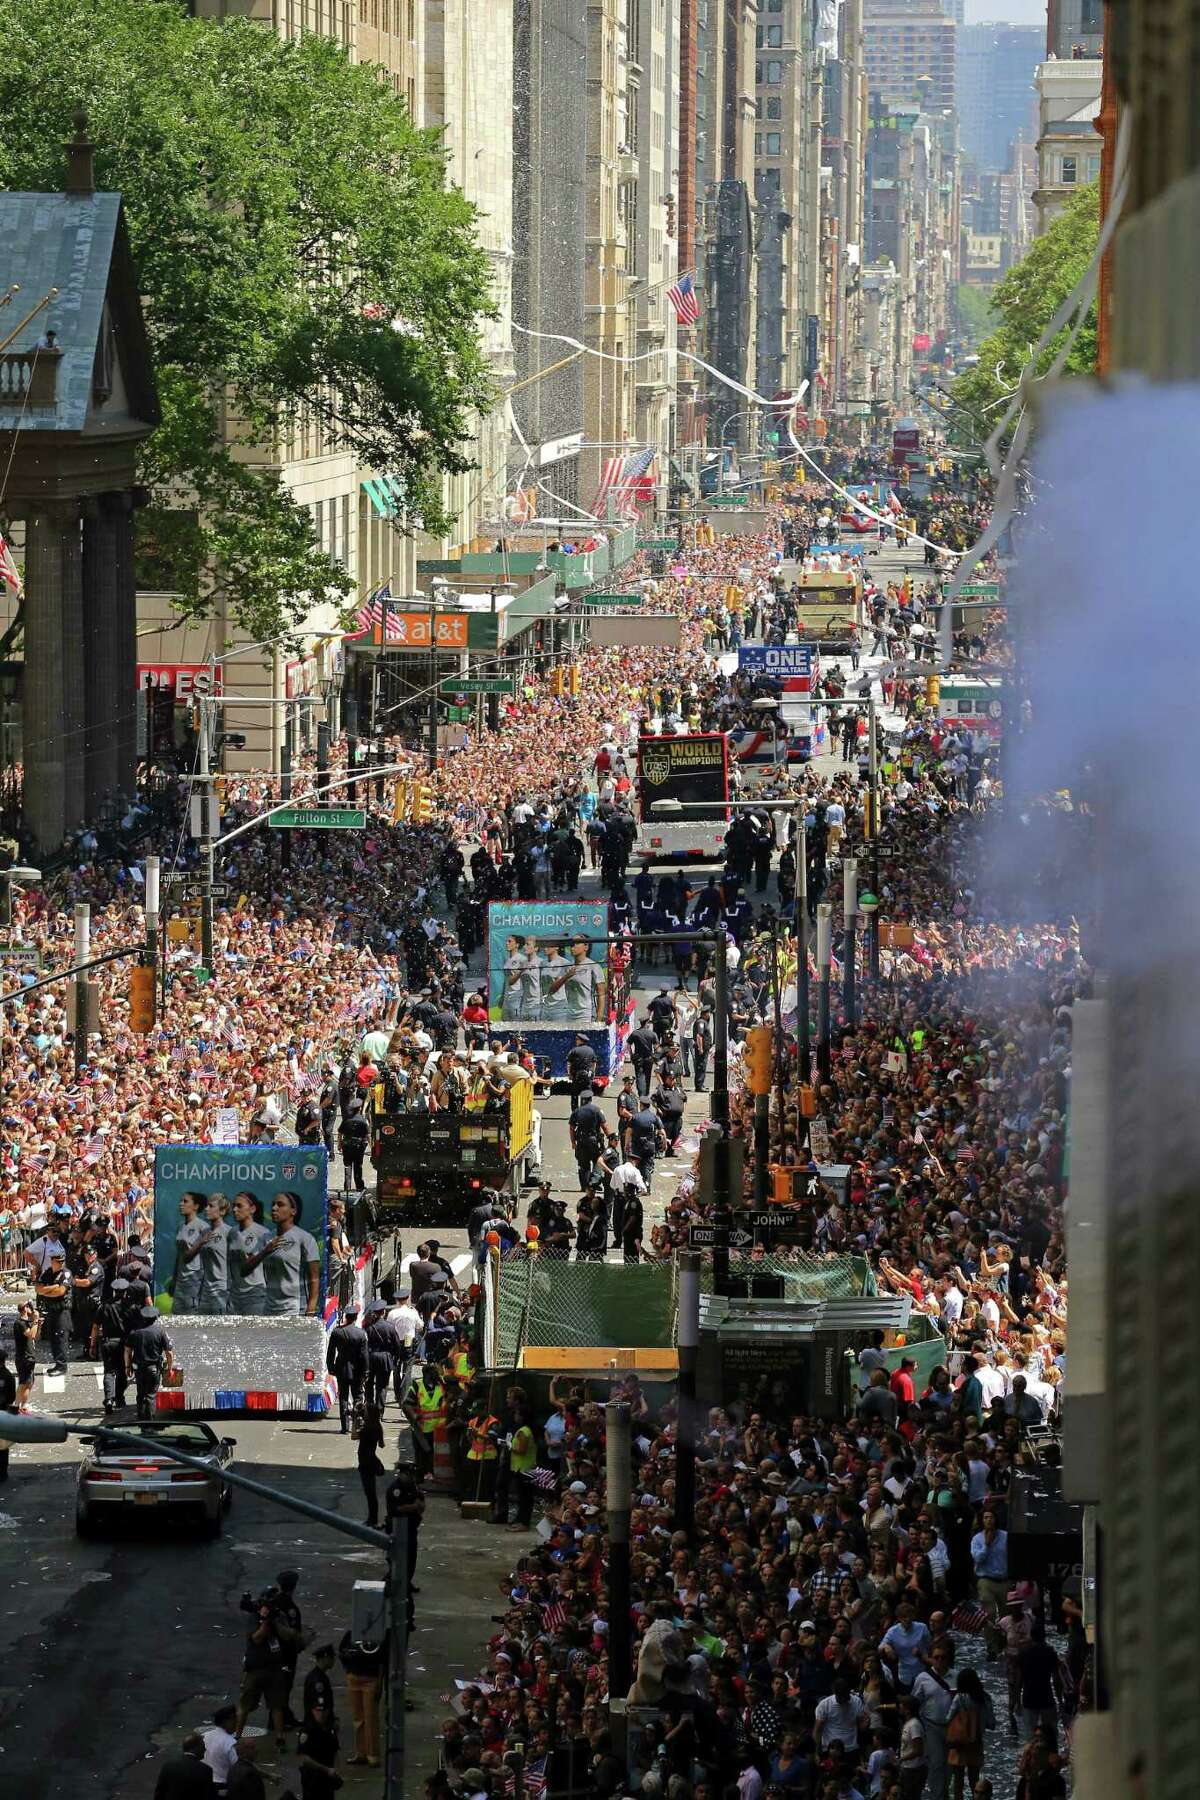 The U.S. Women's World Cup team stands on floats as they move through thousands of fans along Broadway on Friday in New York in a view from 150 Broadway.